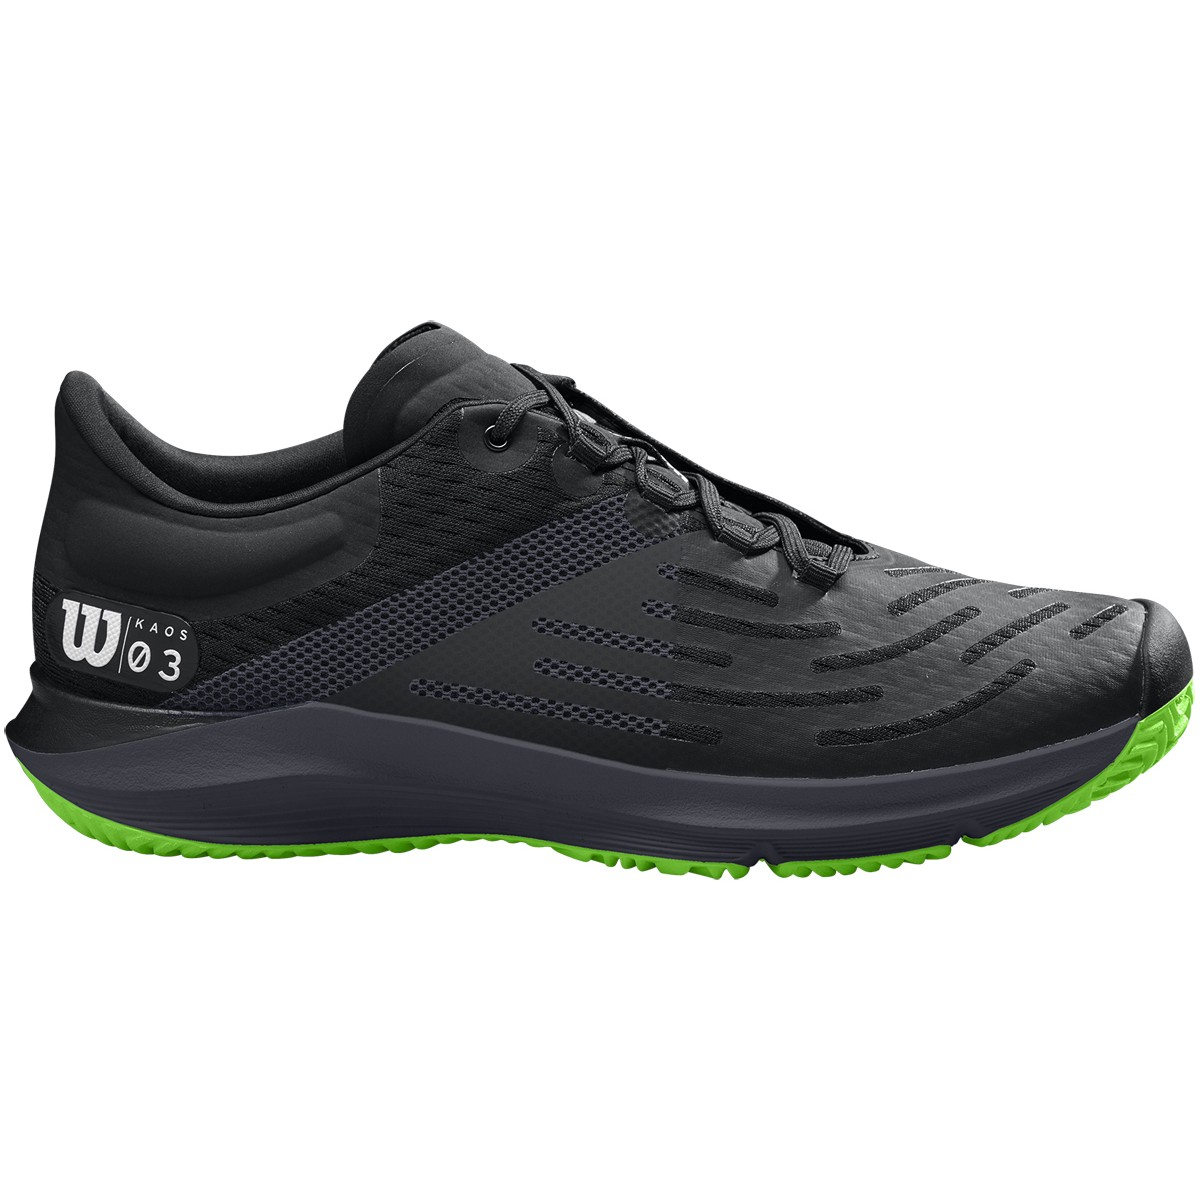 WILSON KAOS 3.0 ALL COURT TENNISSCHOENEN